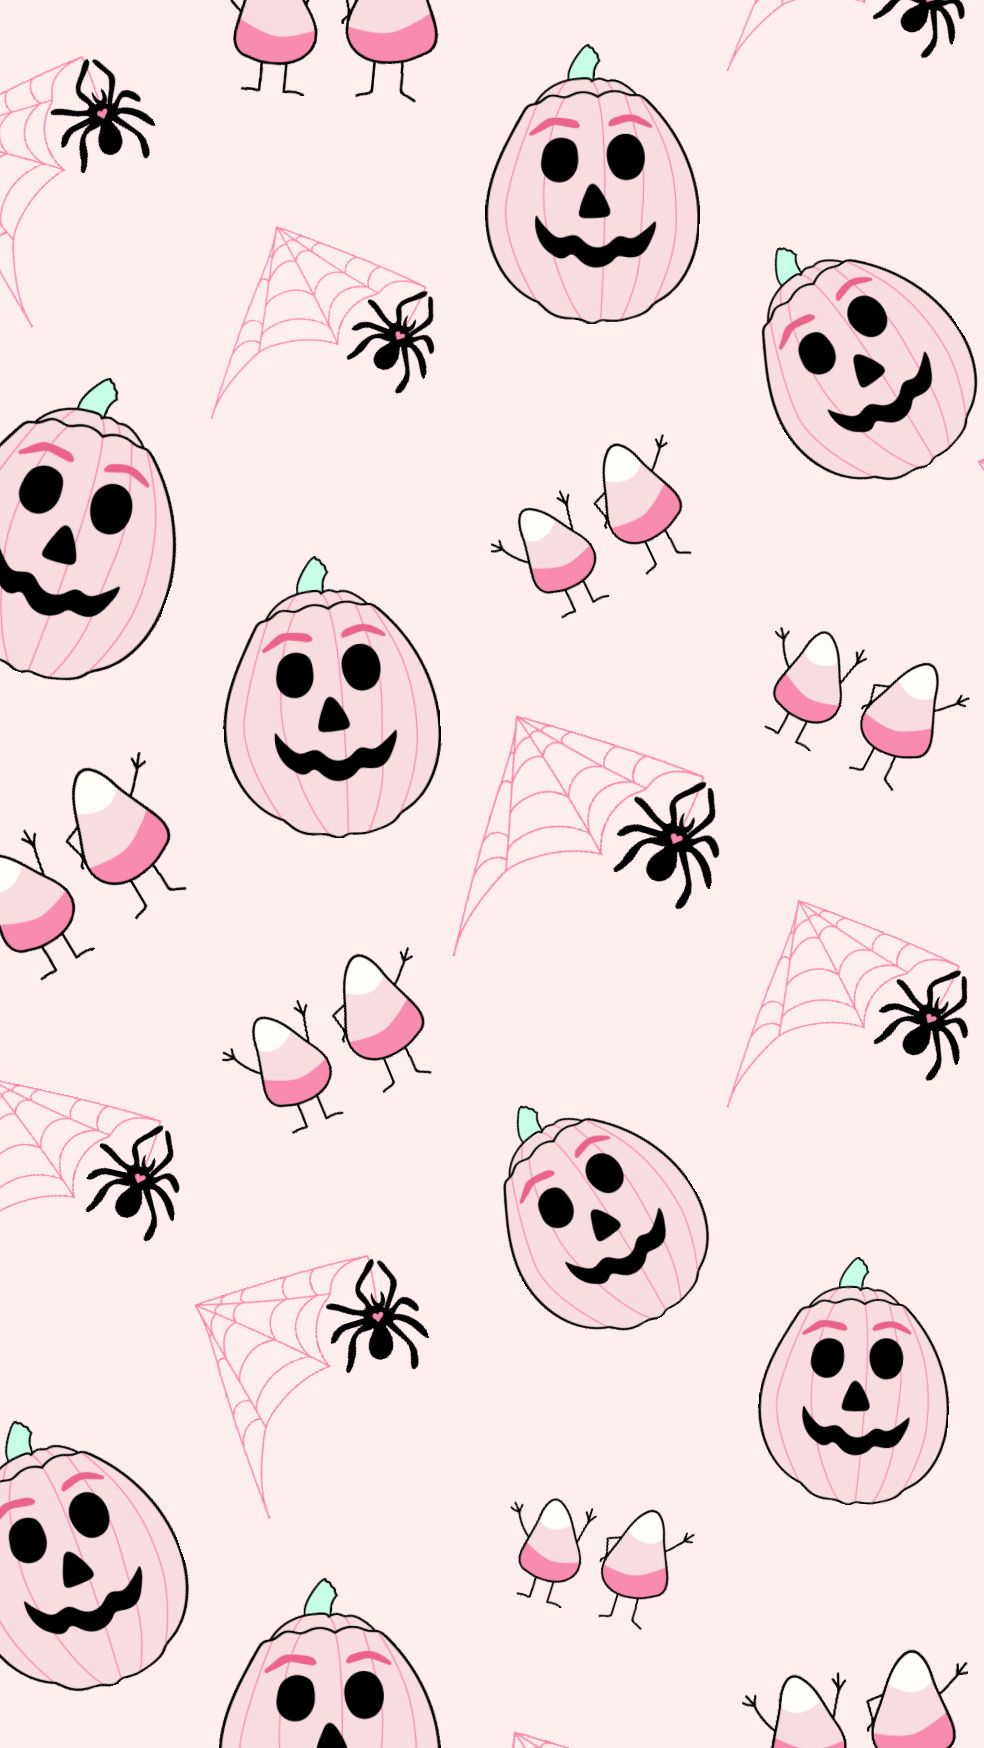 Pin By Lizzykits On Spooky Cute Halloween Wallpaper Iphone Halloween Wallpaper Pink Halloween